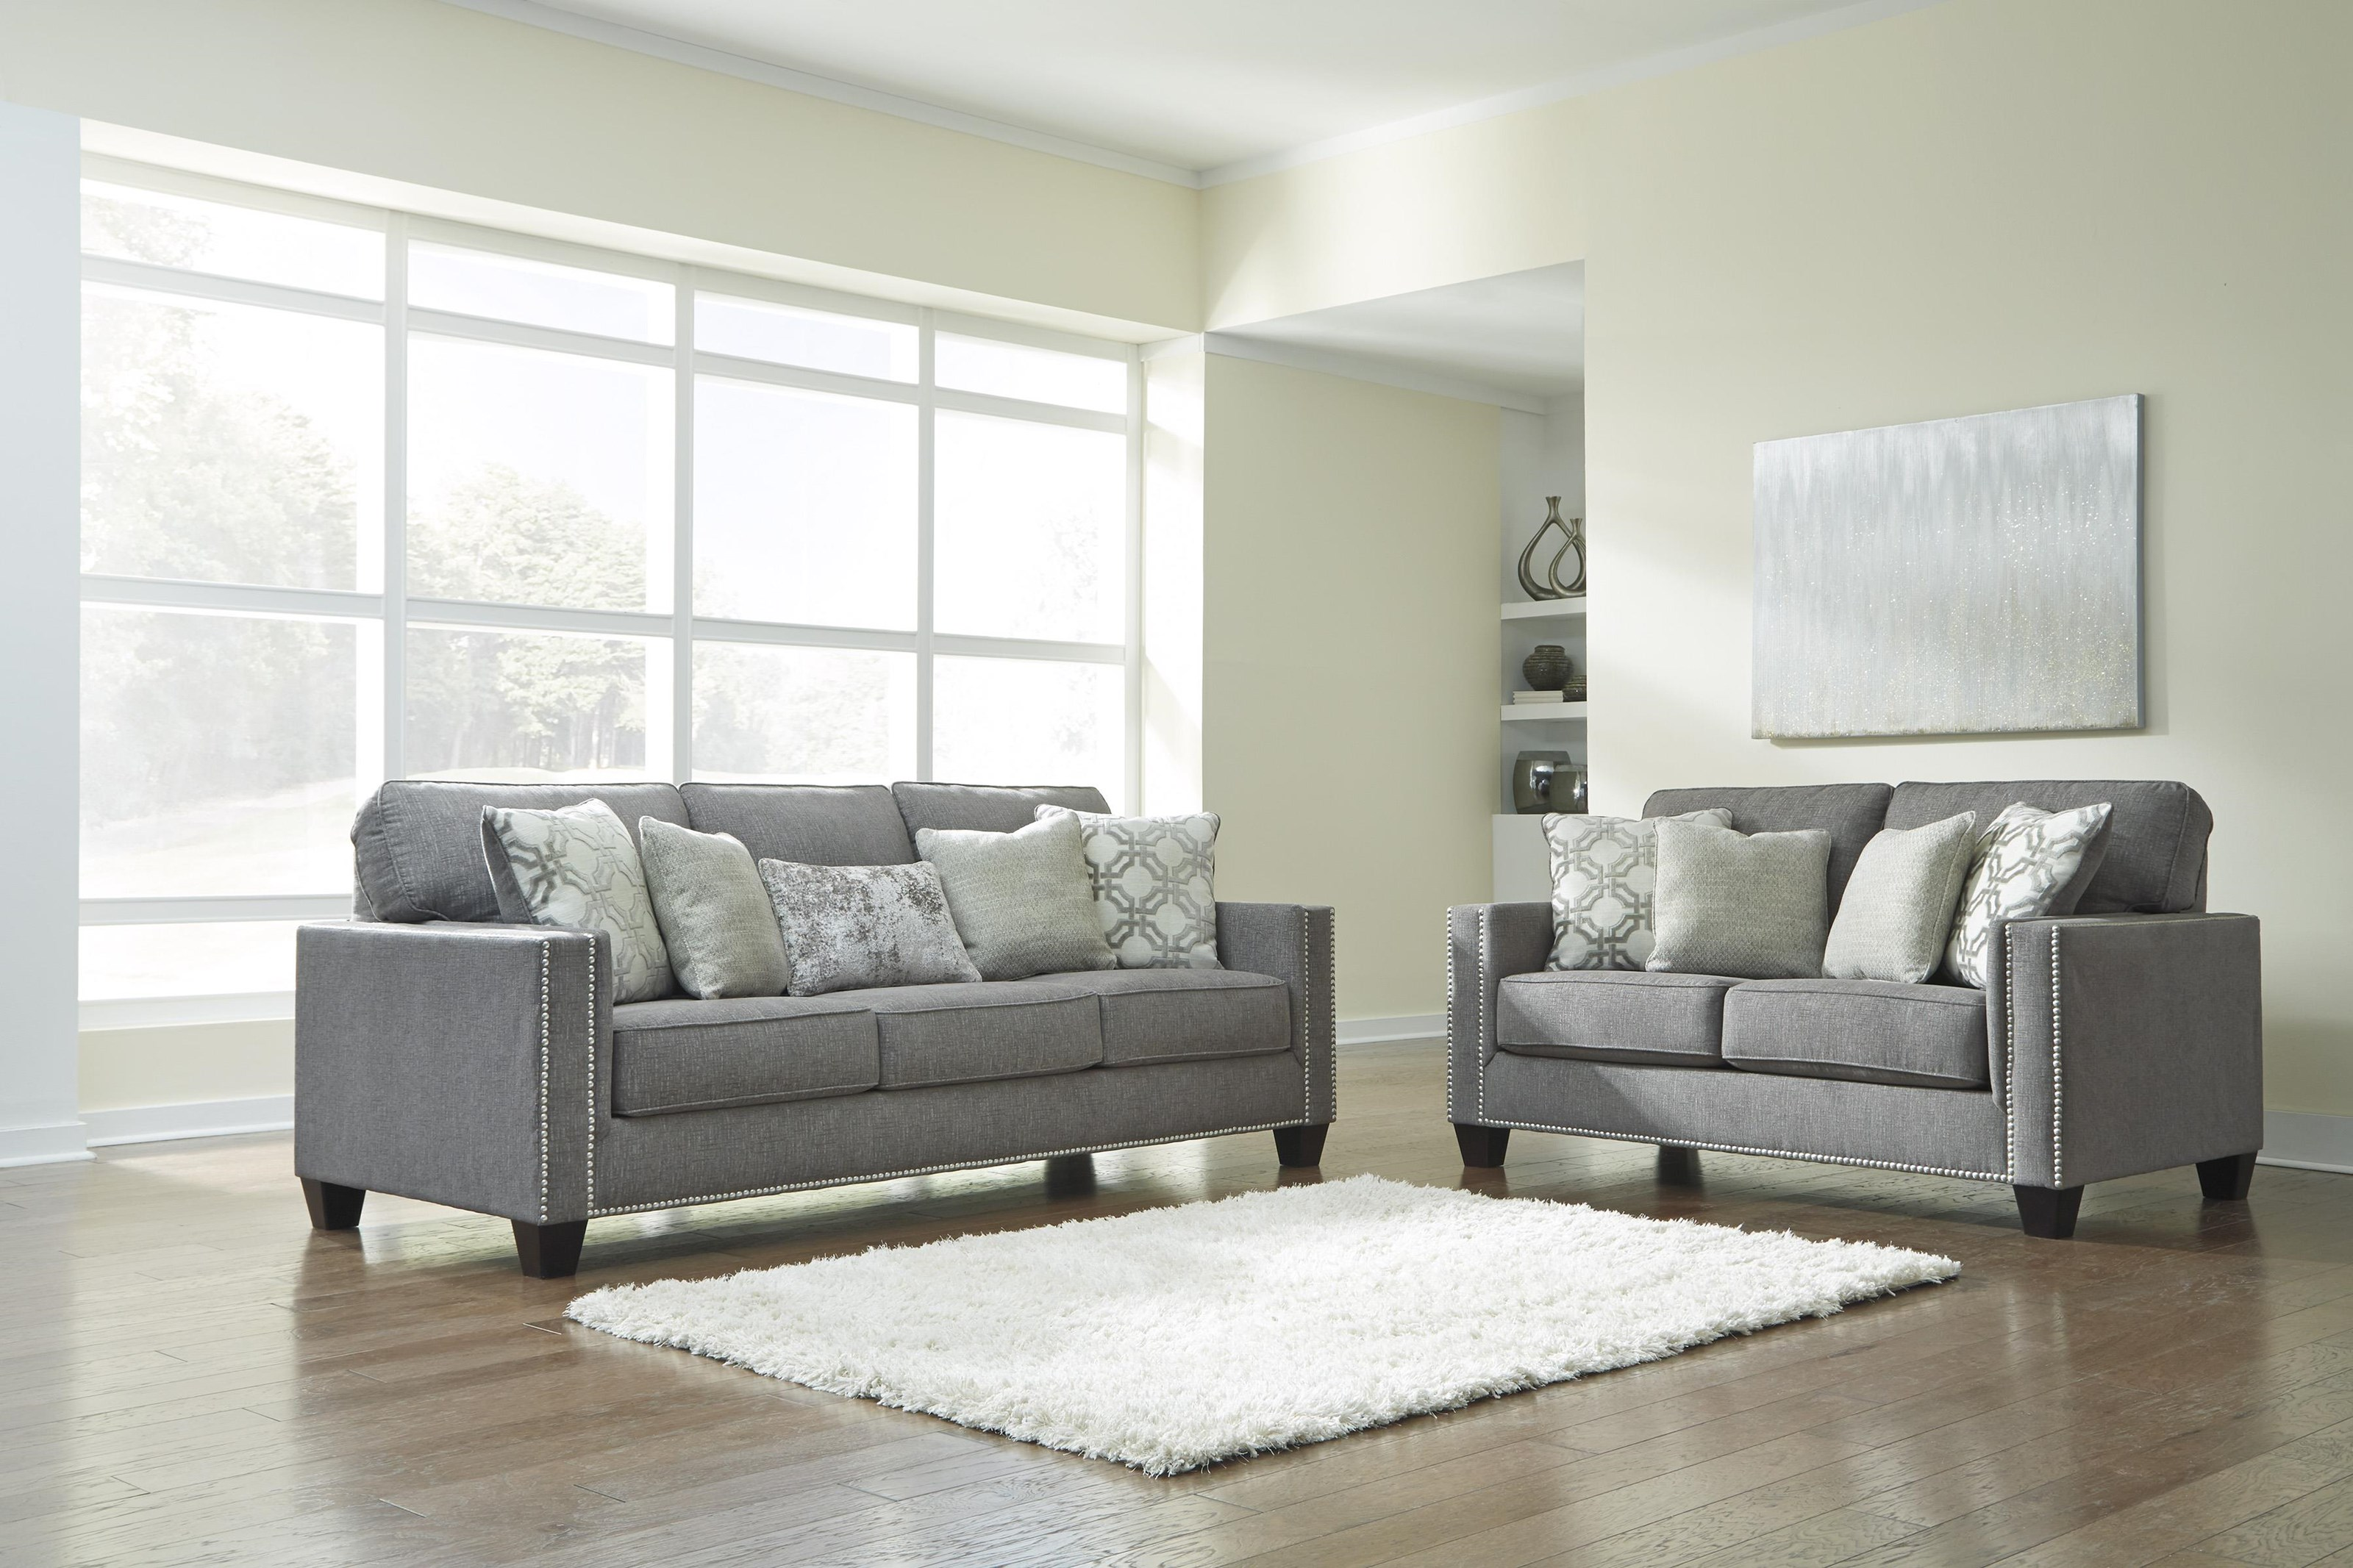 Picture of: Ashley Furniture Barrali 1390438 35 Fog Sofa And Loveseat Set Sam Levitz Outlet Stationary Living Room Groups